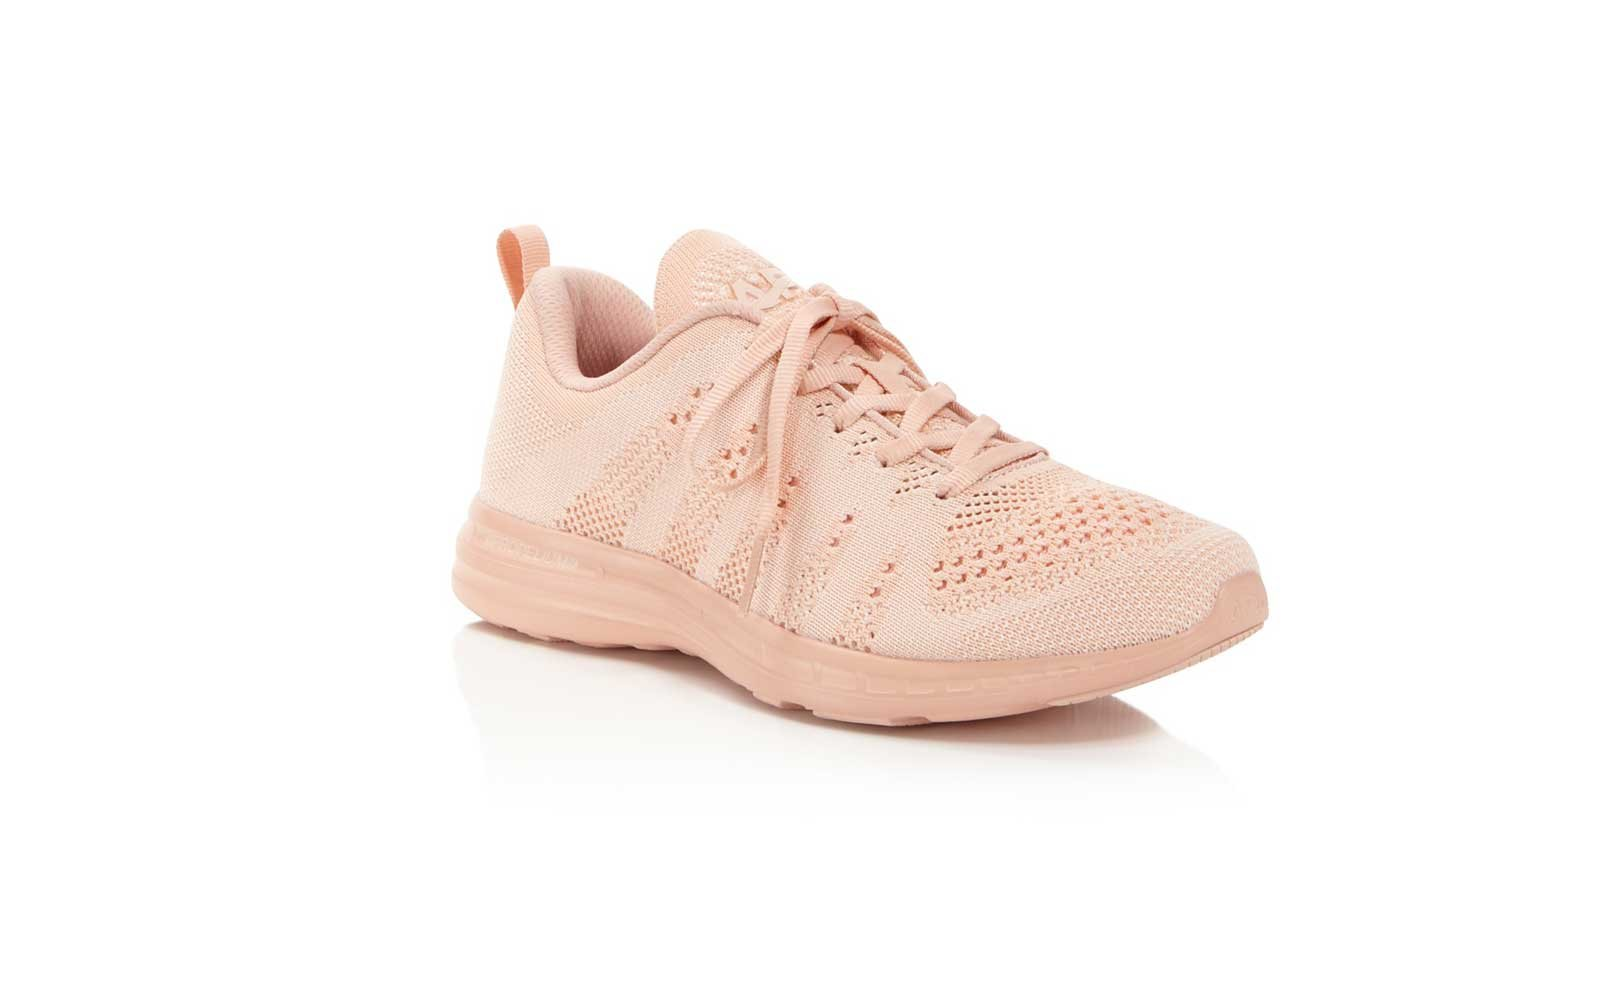 Women's TechLoom Pro Knit Lace Up Sneakers